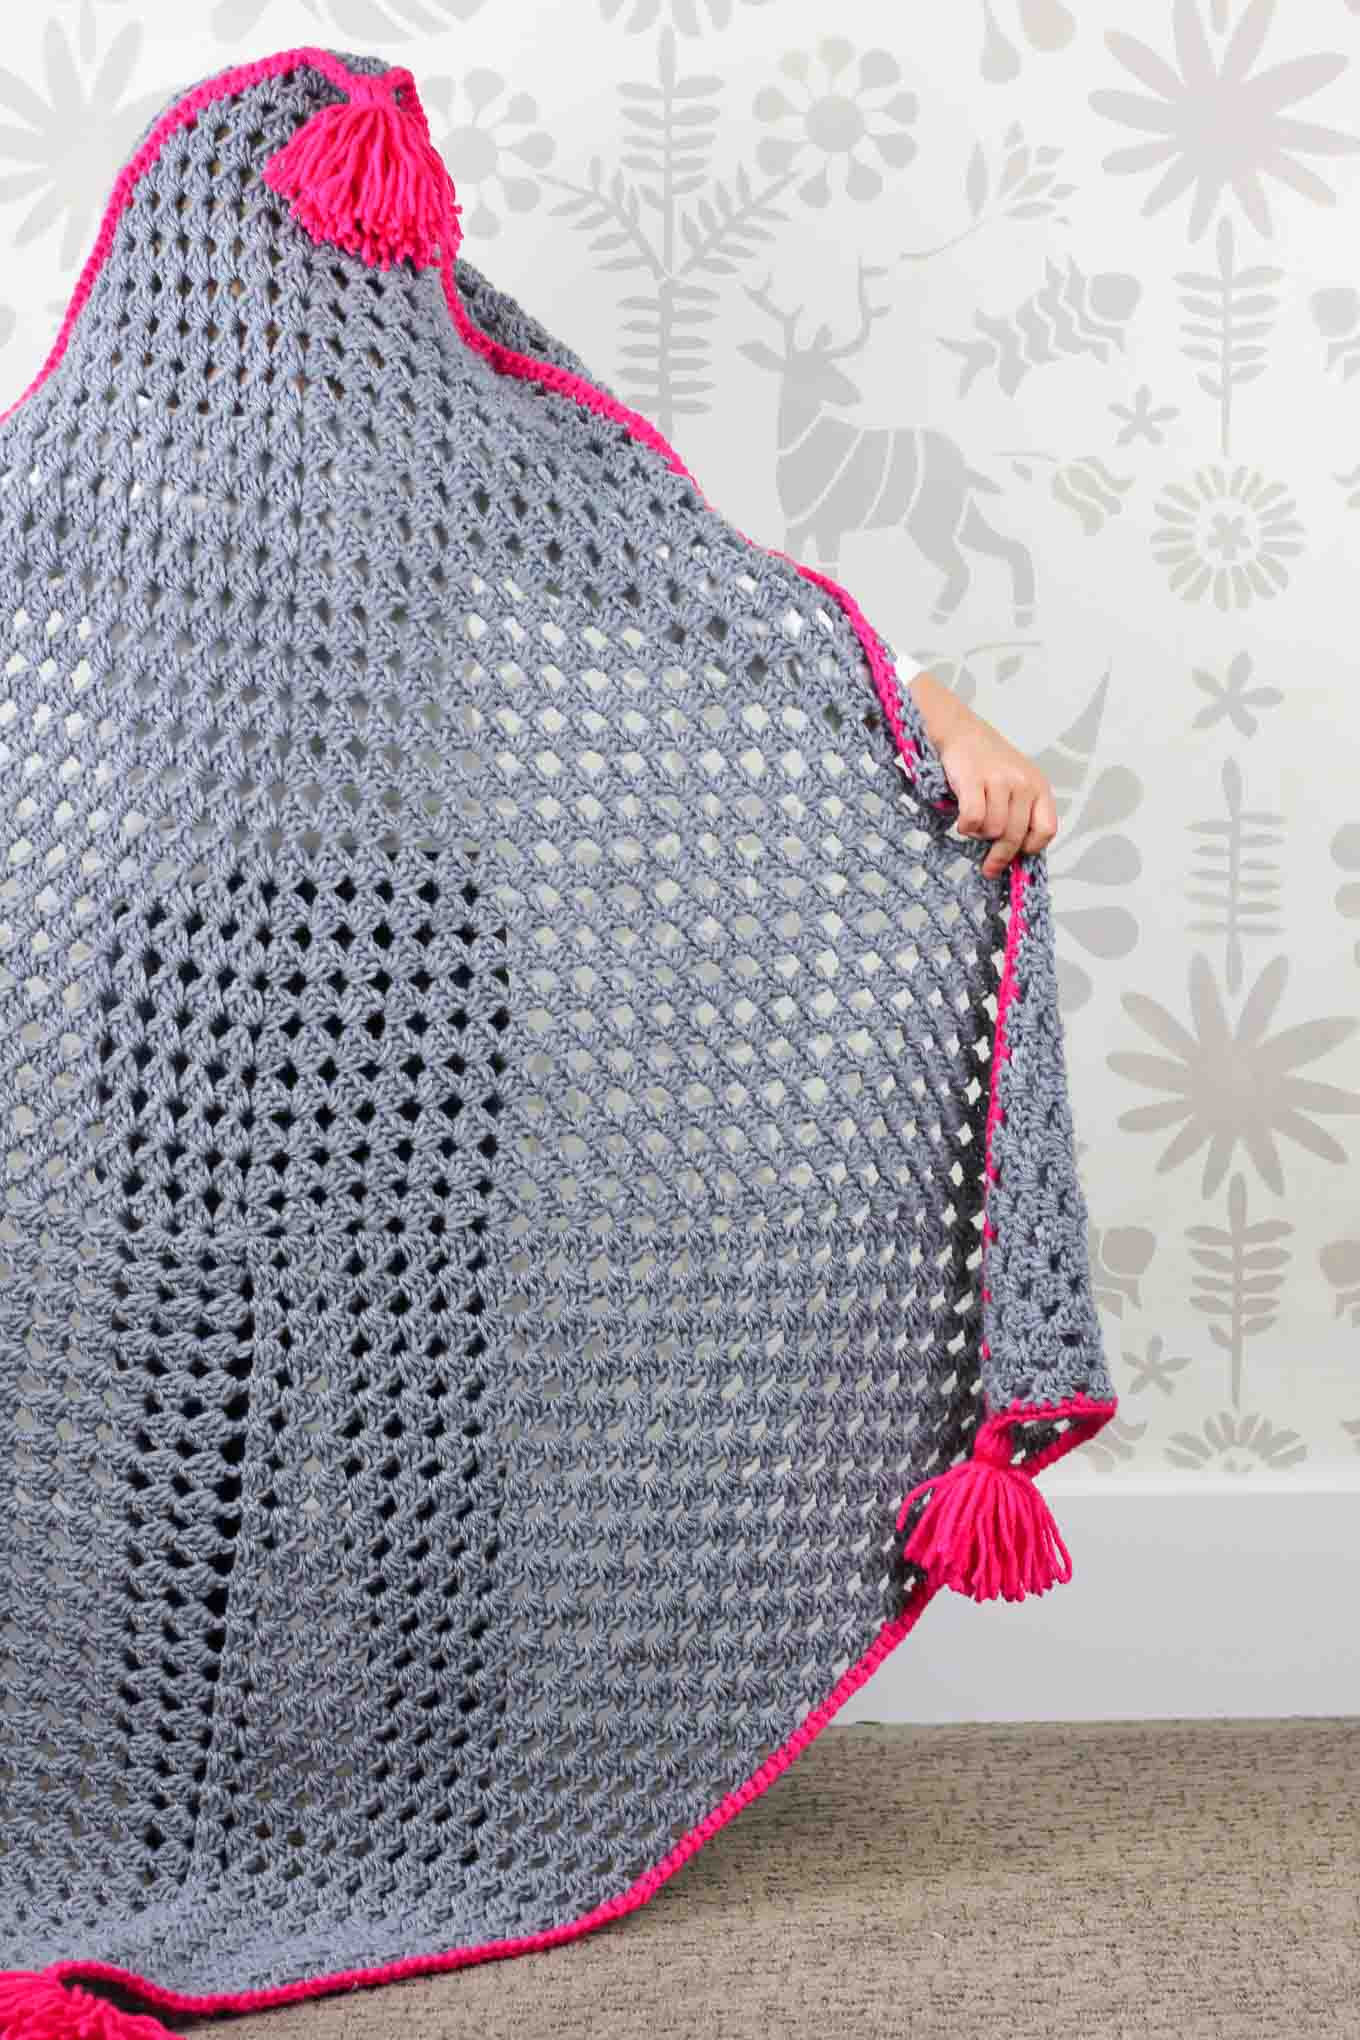 Baby Afghan Patterns Elegant Modern Crochet Hooded Baby Blanket Free Pattern for Charity Of Amazing 46 Ideas Baby Afghan Patterns